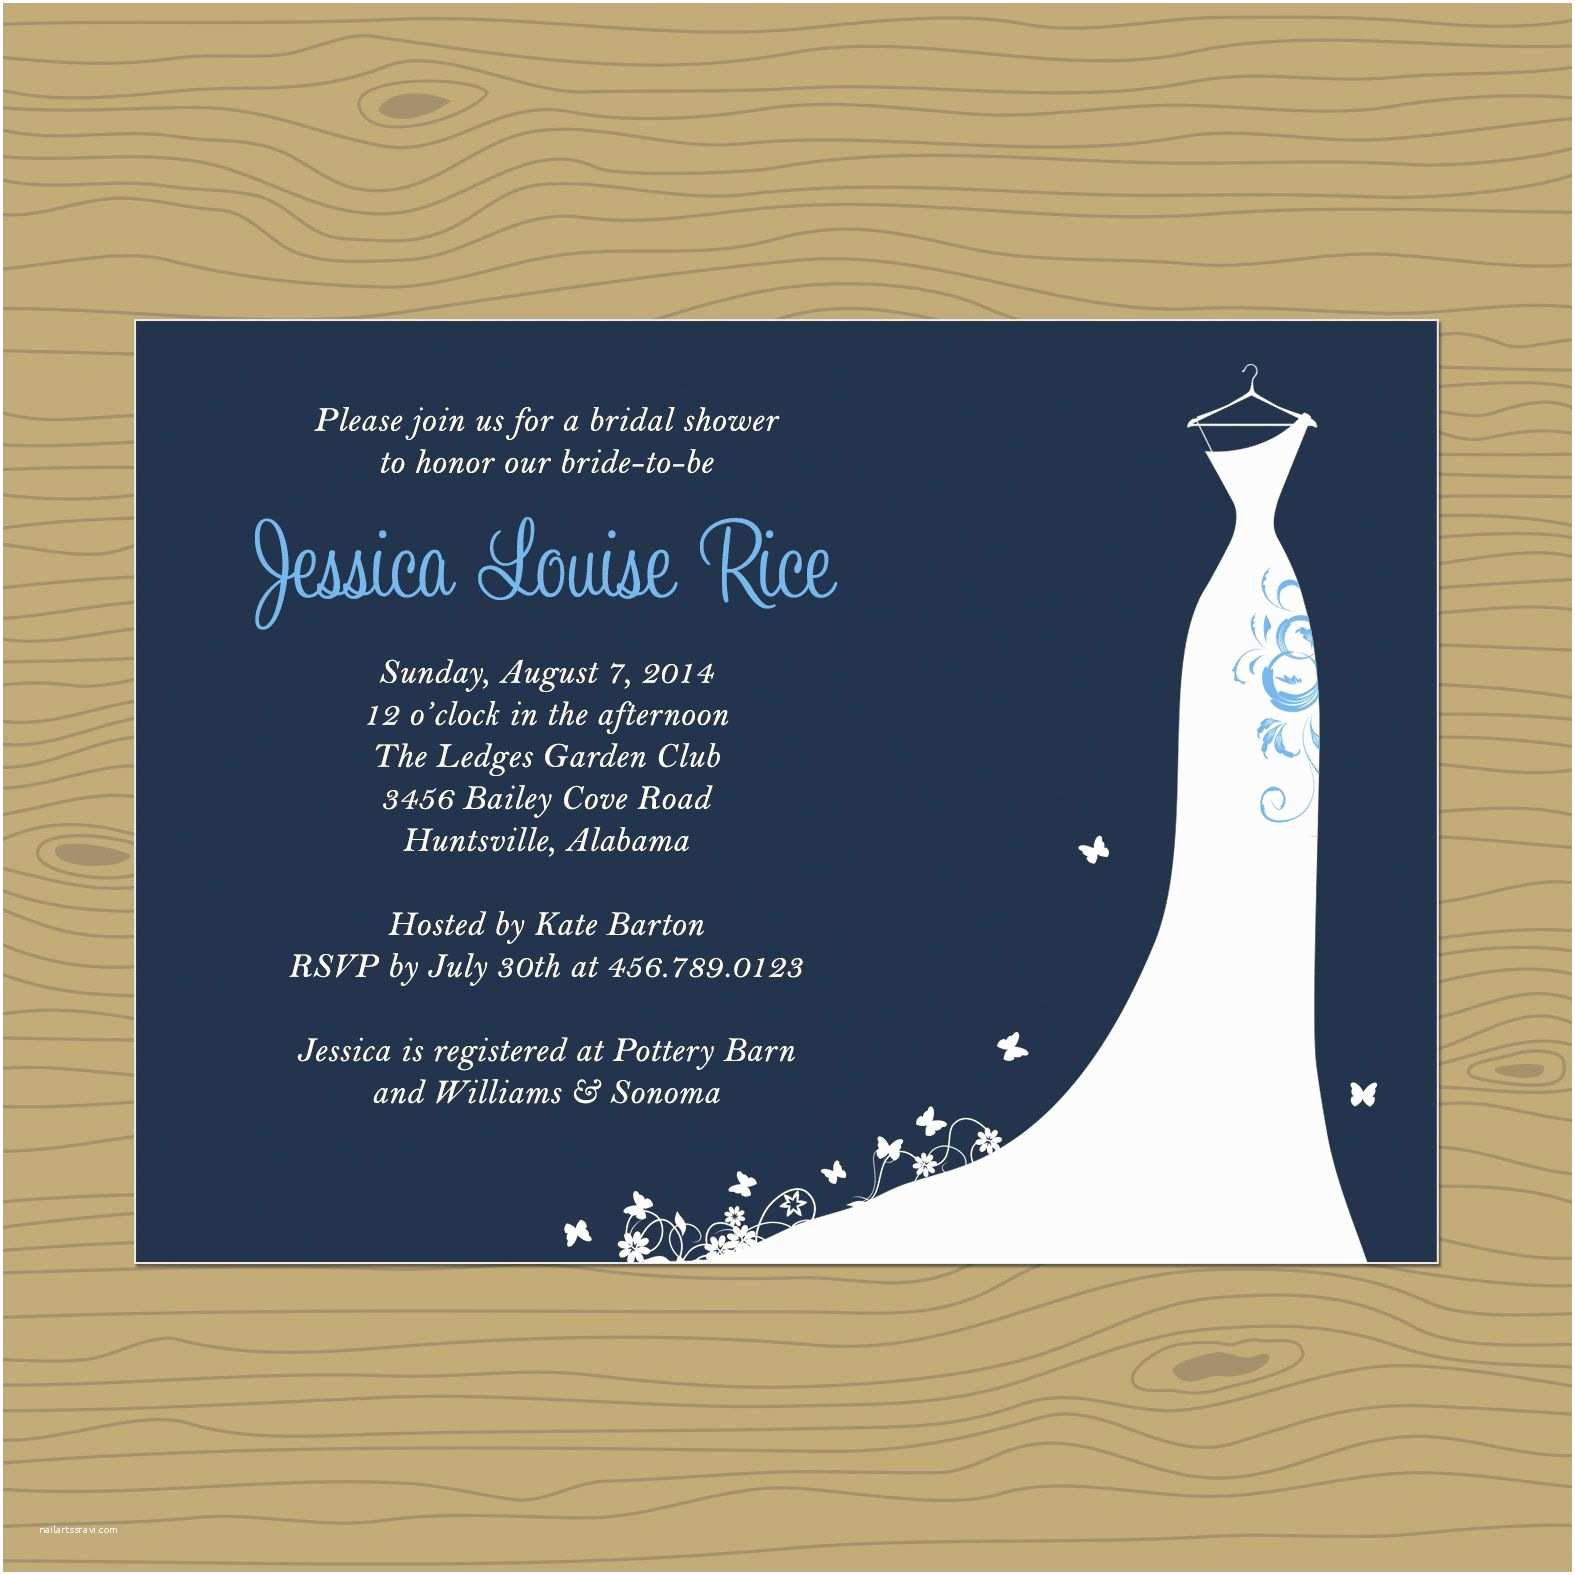 Vistaprint Com Wedding Invitations Vista Print Bridal Shower Invites Engagement Party